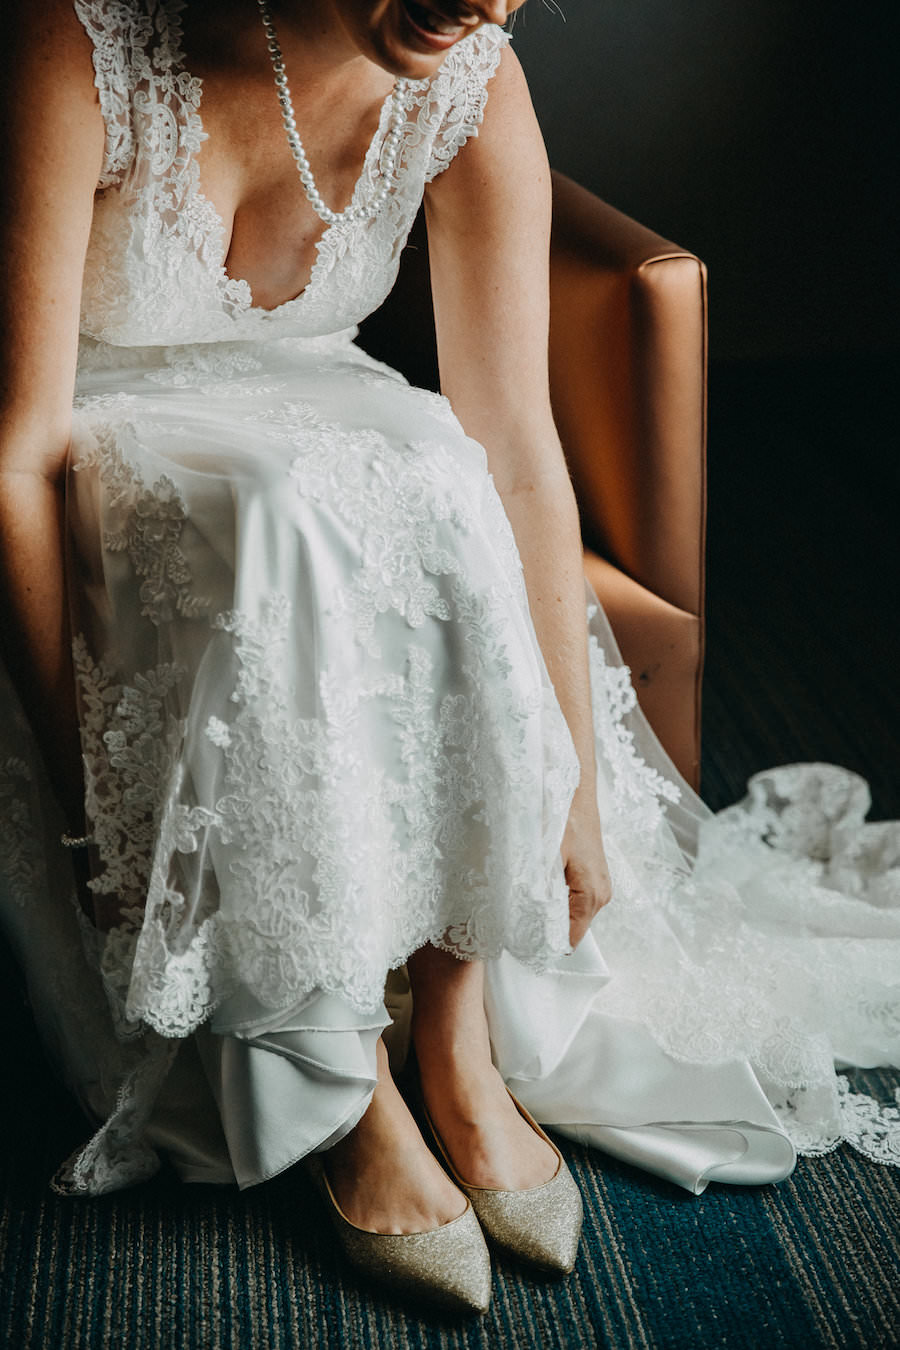 Bride Getting Ready Portrait on Wedding Day Putting On Gold Glitter Sam Edelman Shoes Wearing Lace Maggie Sottero Dress   Tampa Bay Wedding Photographer Rad Red Creative